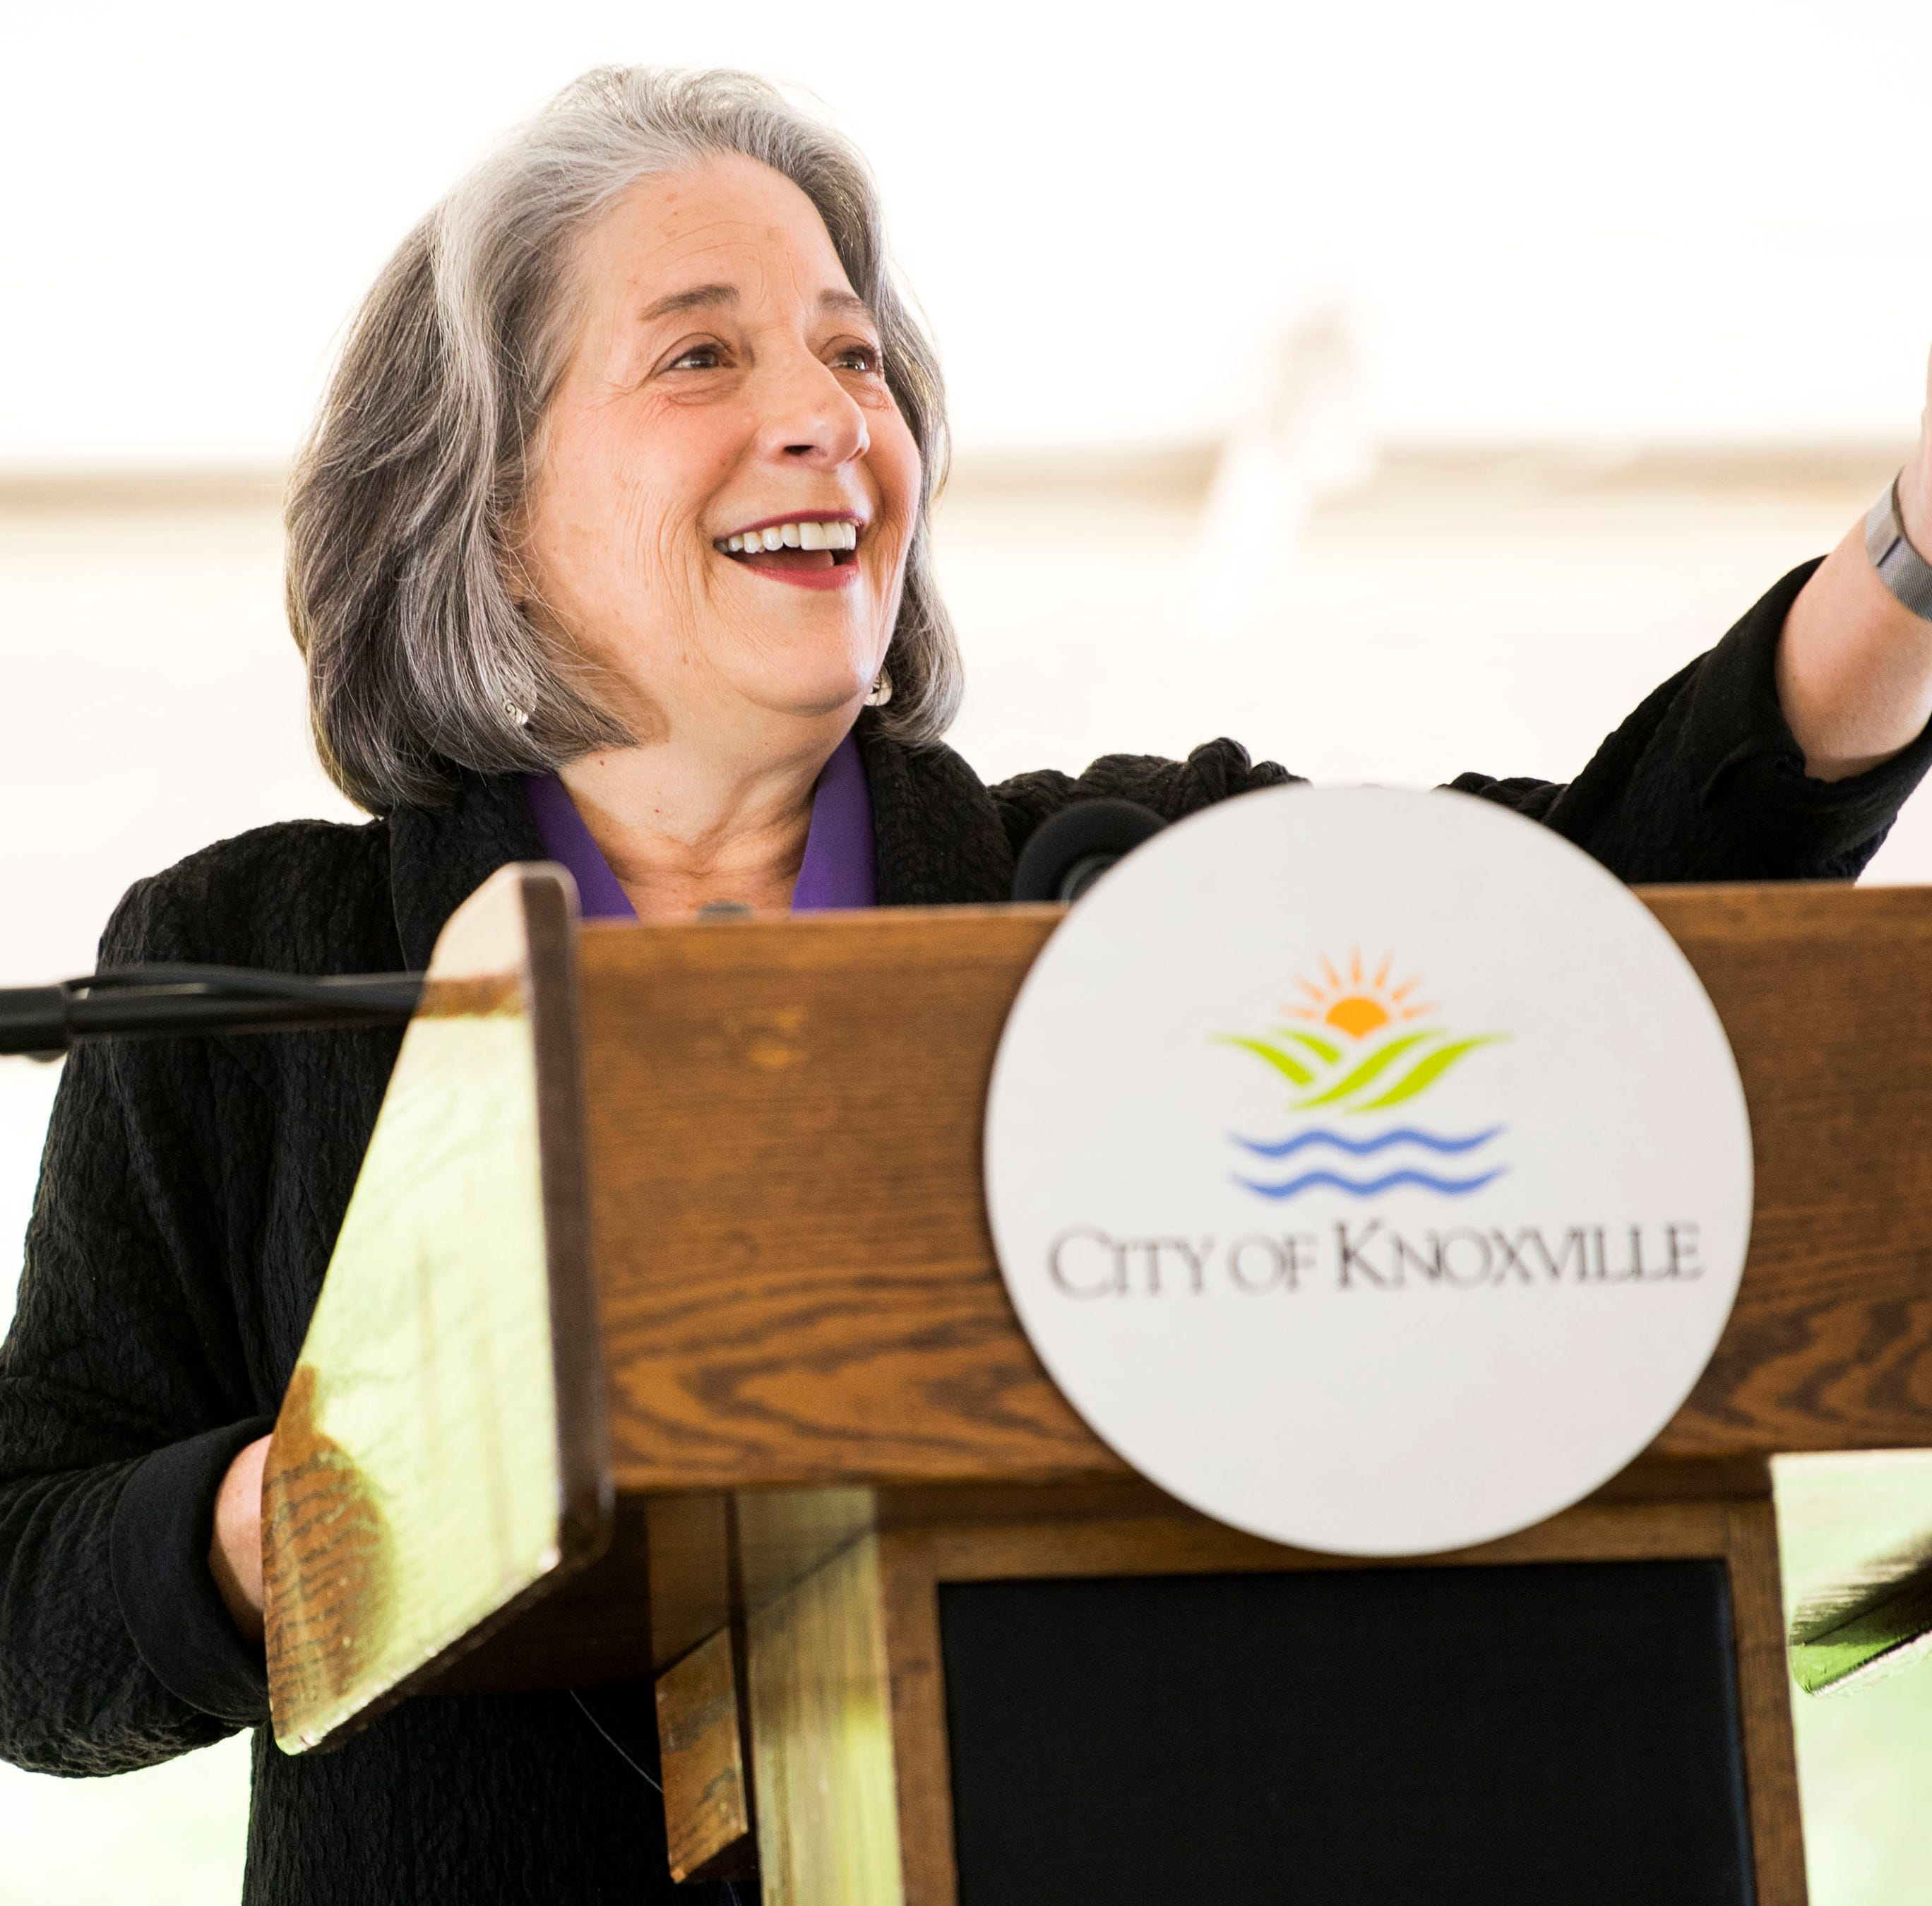 Knoxville Mayor Madeline Rogero gives her final State of the City address at the Urban Wilderness Gateway Park in South Knoxville on Friday, April 26, 2019.